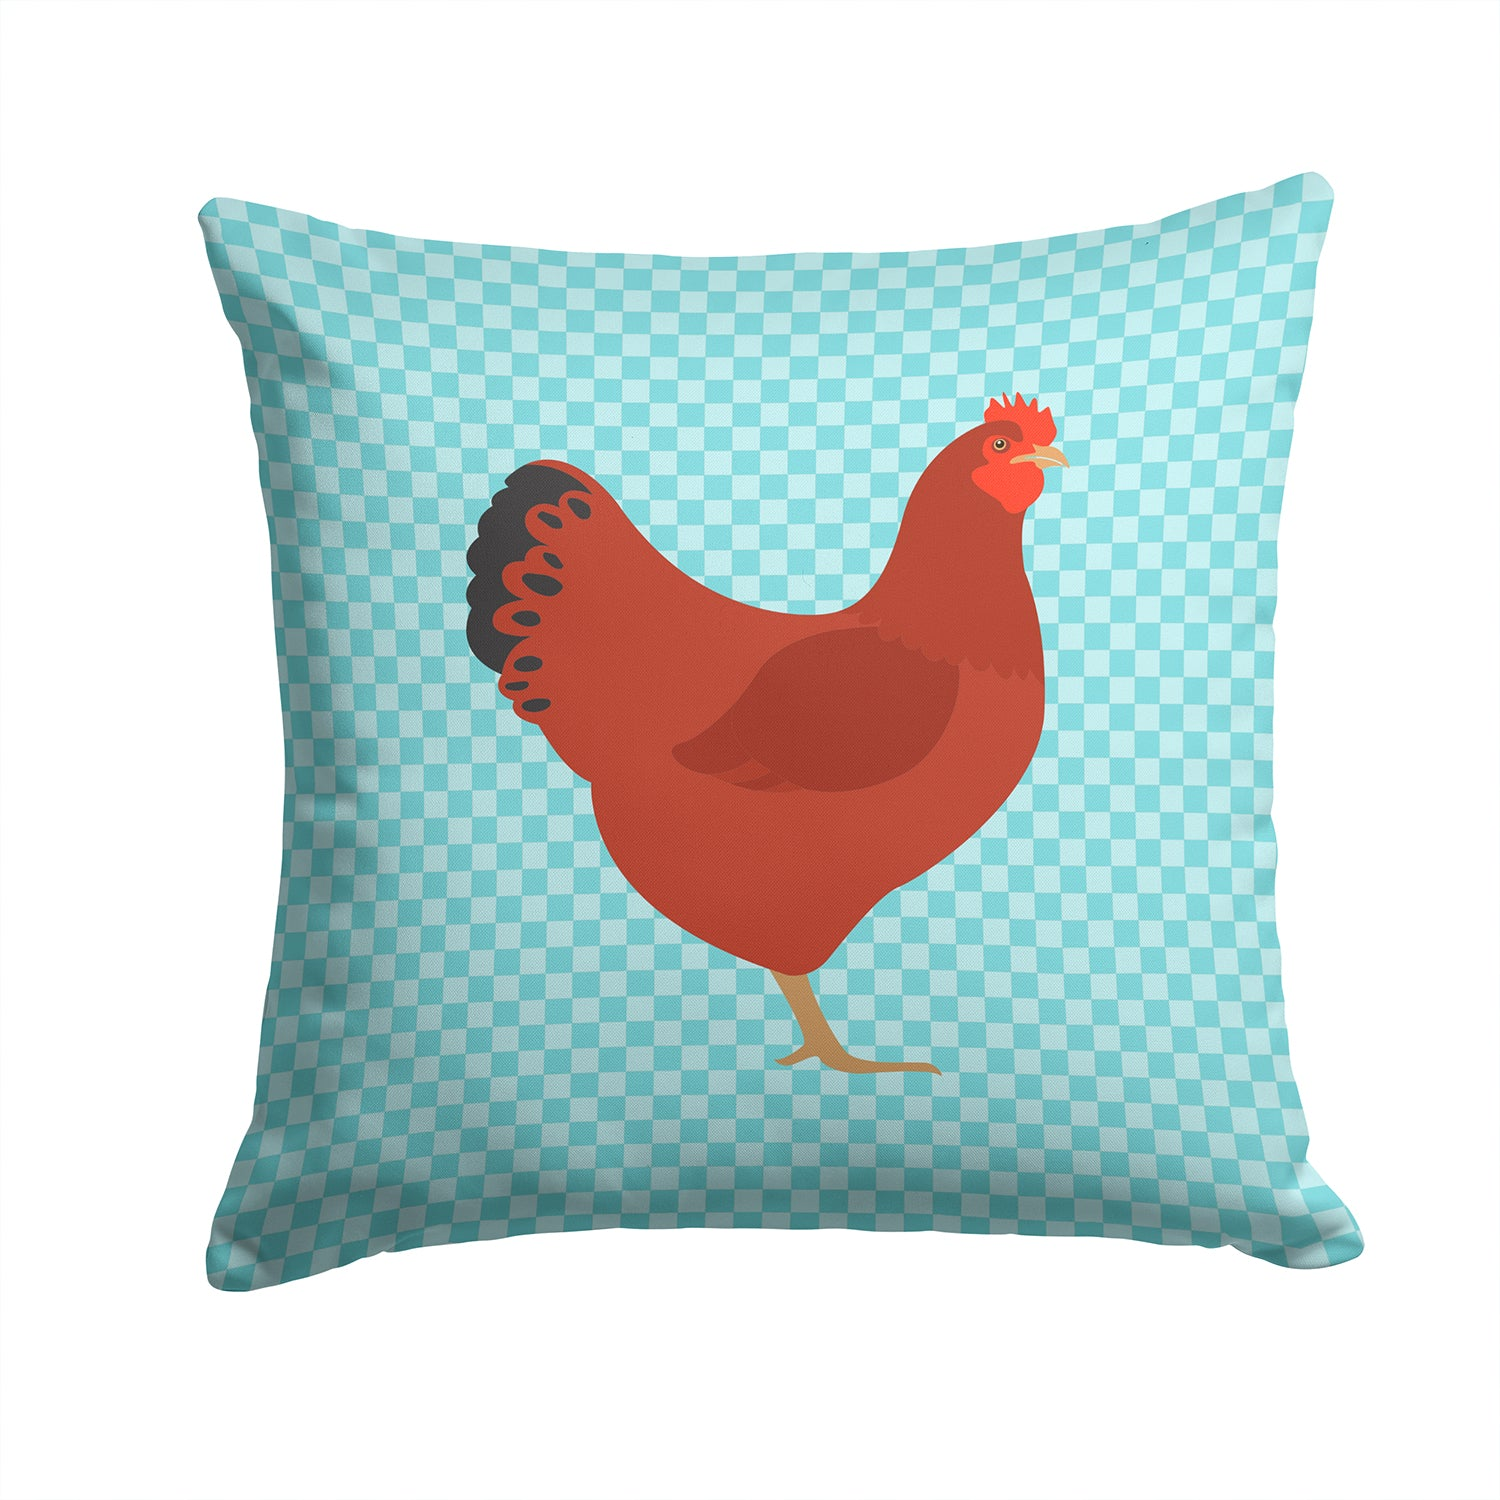 New Hampshire Red Chicken Blue Check Fabric Decorative Pillow BB8017PW1414 by Caroline's Treasures